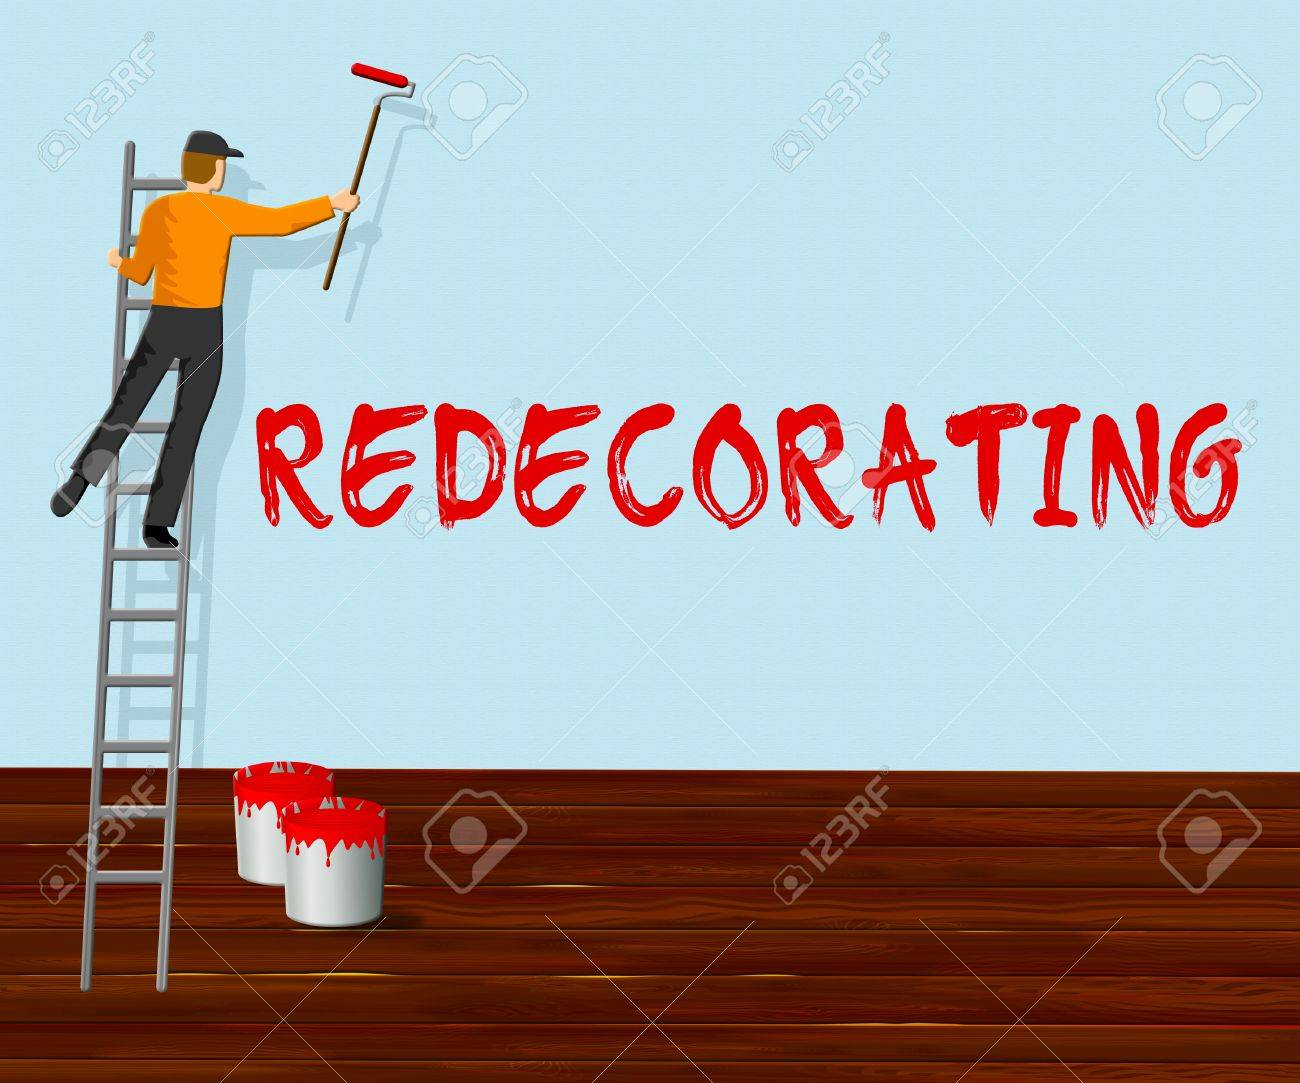 Home Redecorating Showing House Painting 3d Illustration Stock Photo ...